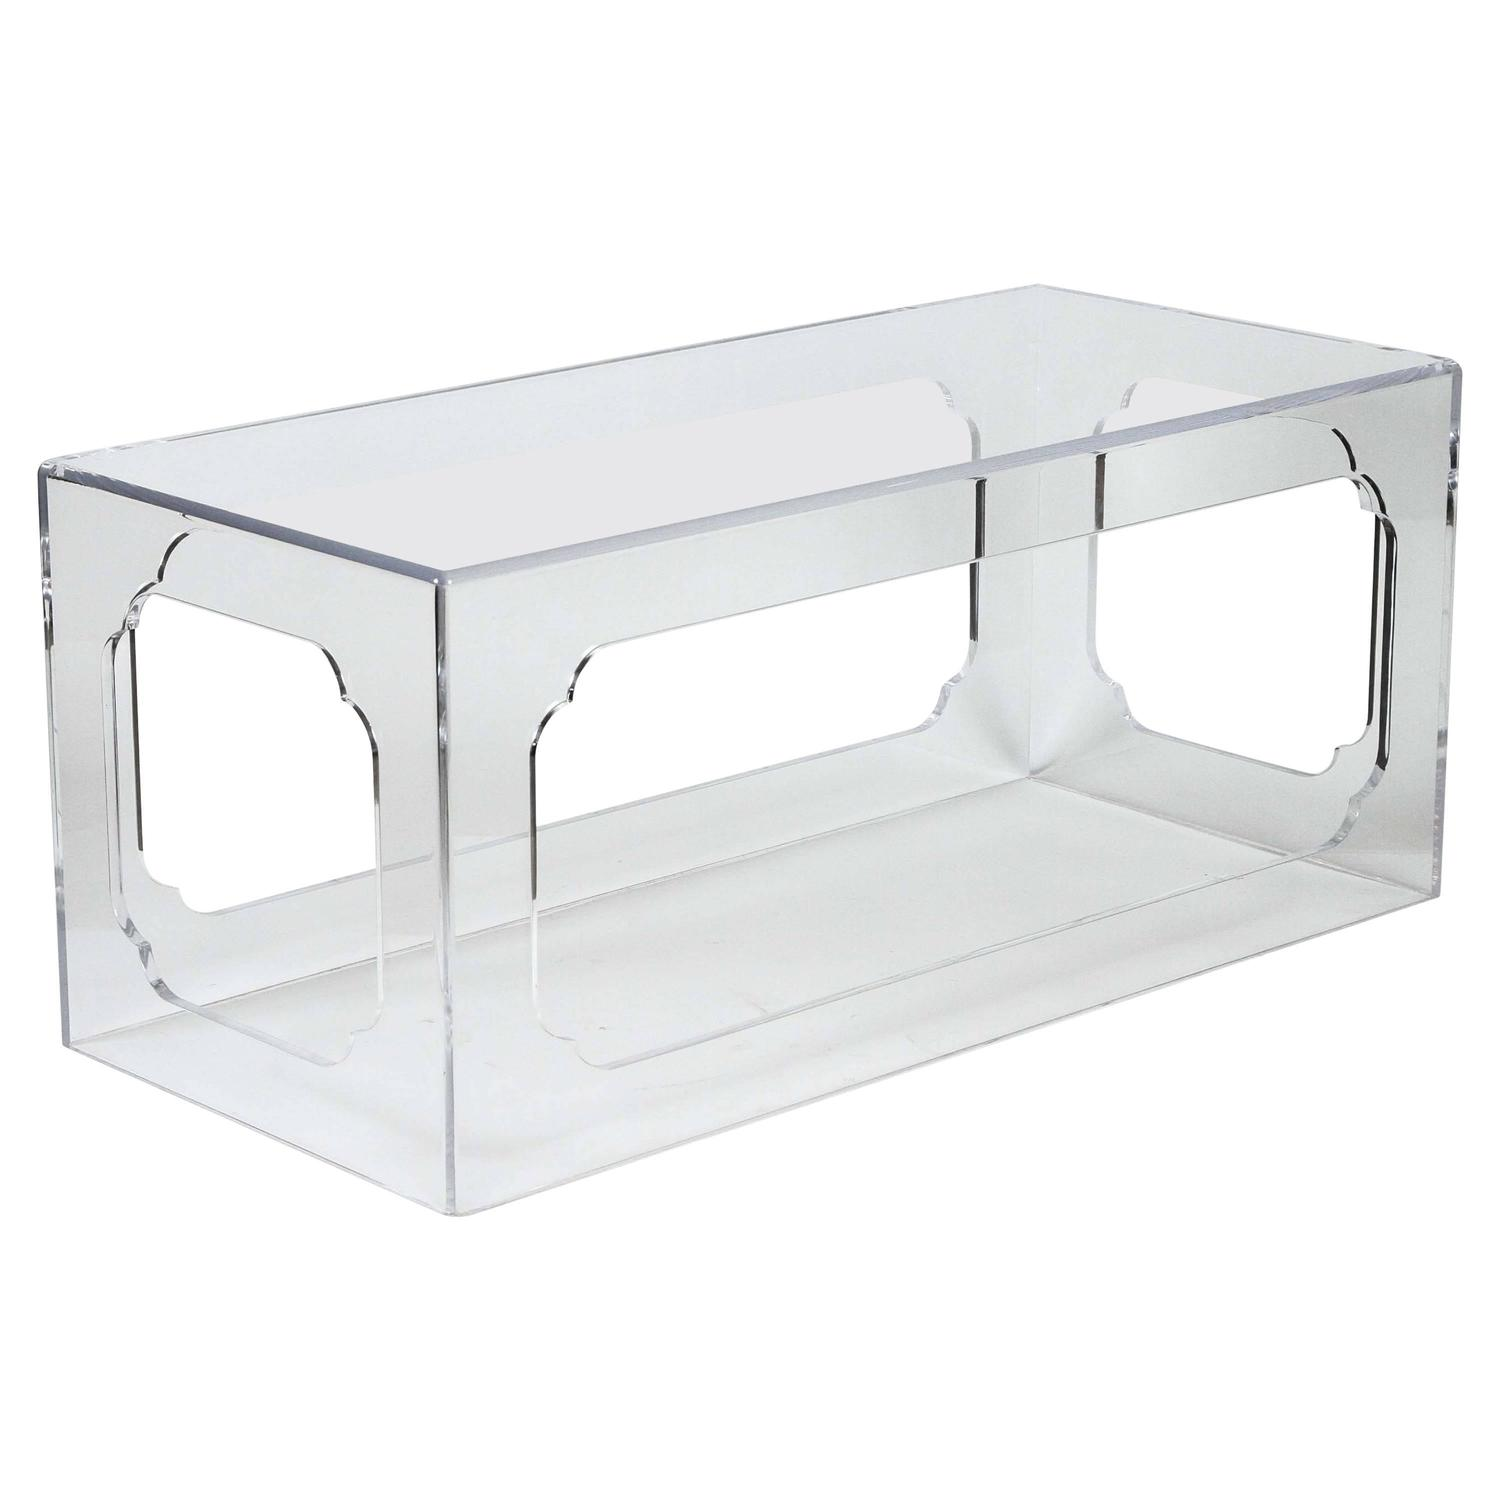 Hollyhock meiji acrylic coffee table in clear for sale for Acrylic coffee tables for sale